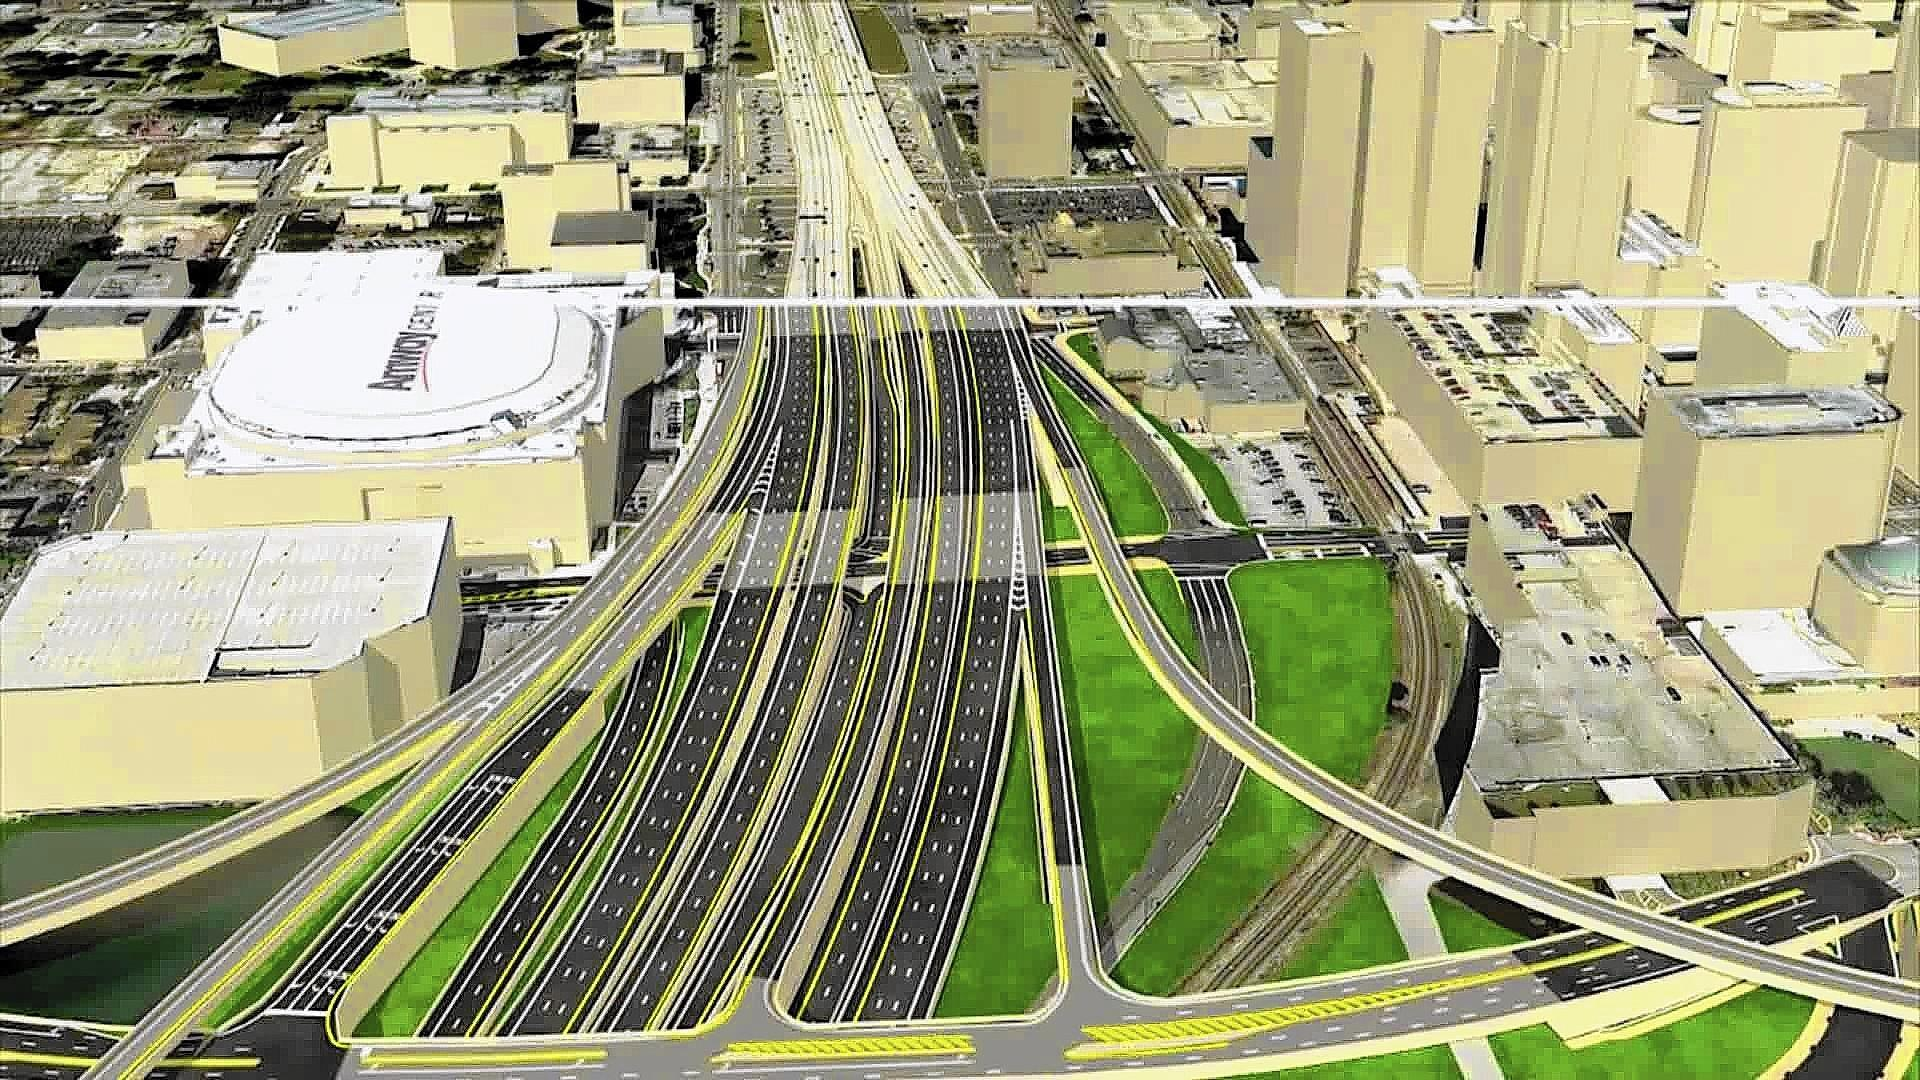 The I-4 Mobility Partners team led by the Swedish international construction conglomerate Skanska won the $2.3 billion bid to rebuild Interstate 4 through downtown Orlando. This photo is a screen grab from the computer animation of the project.